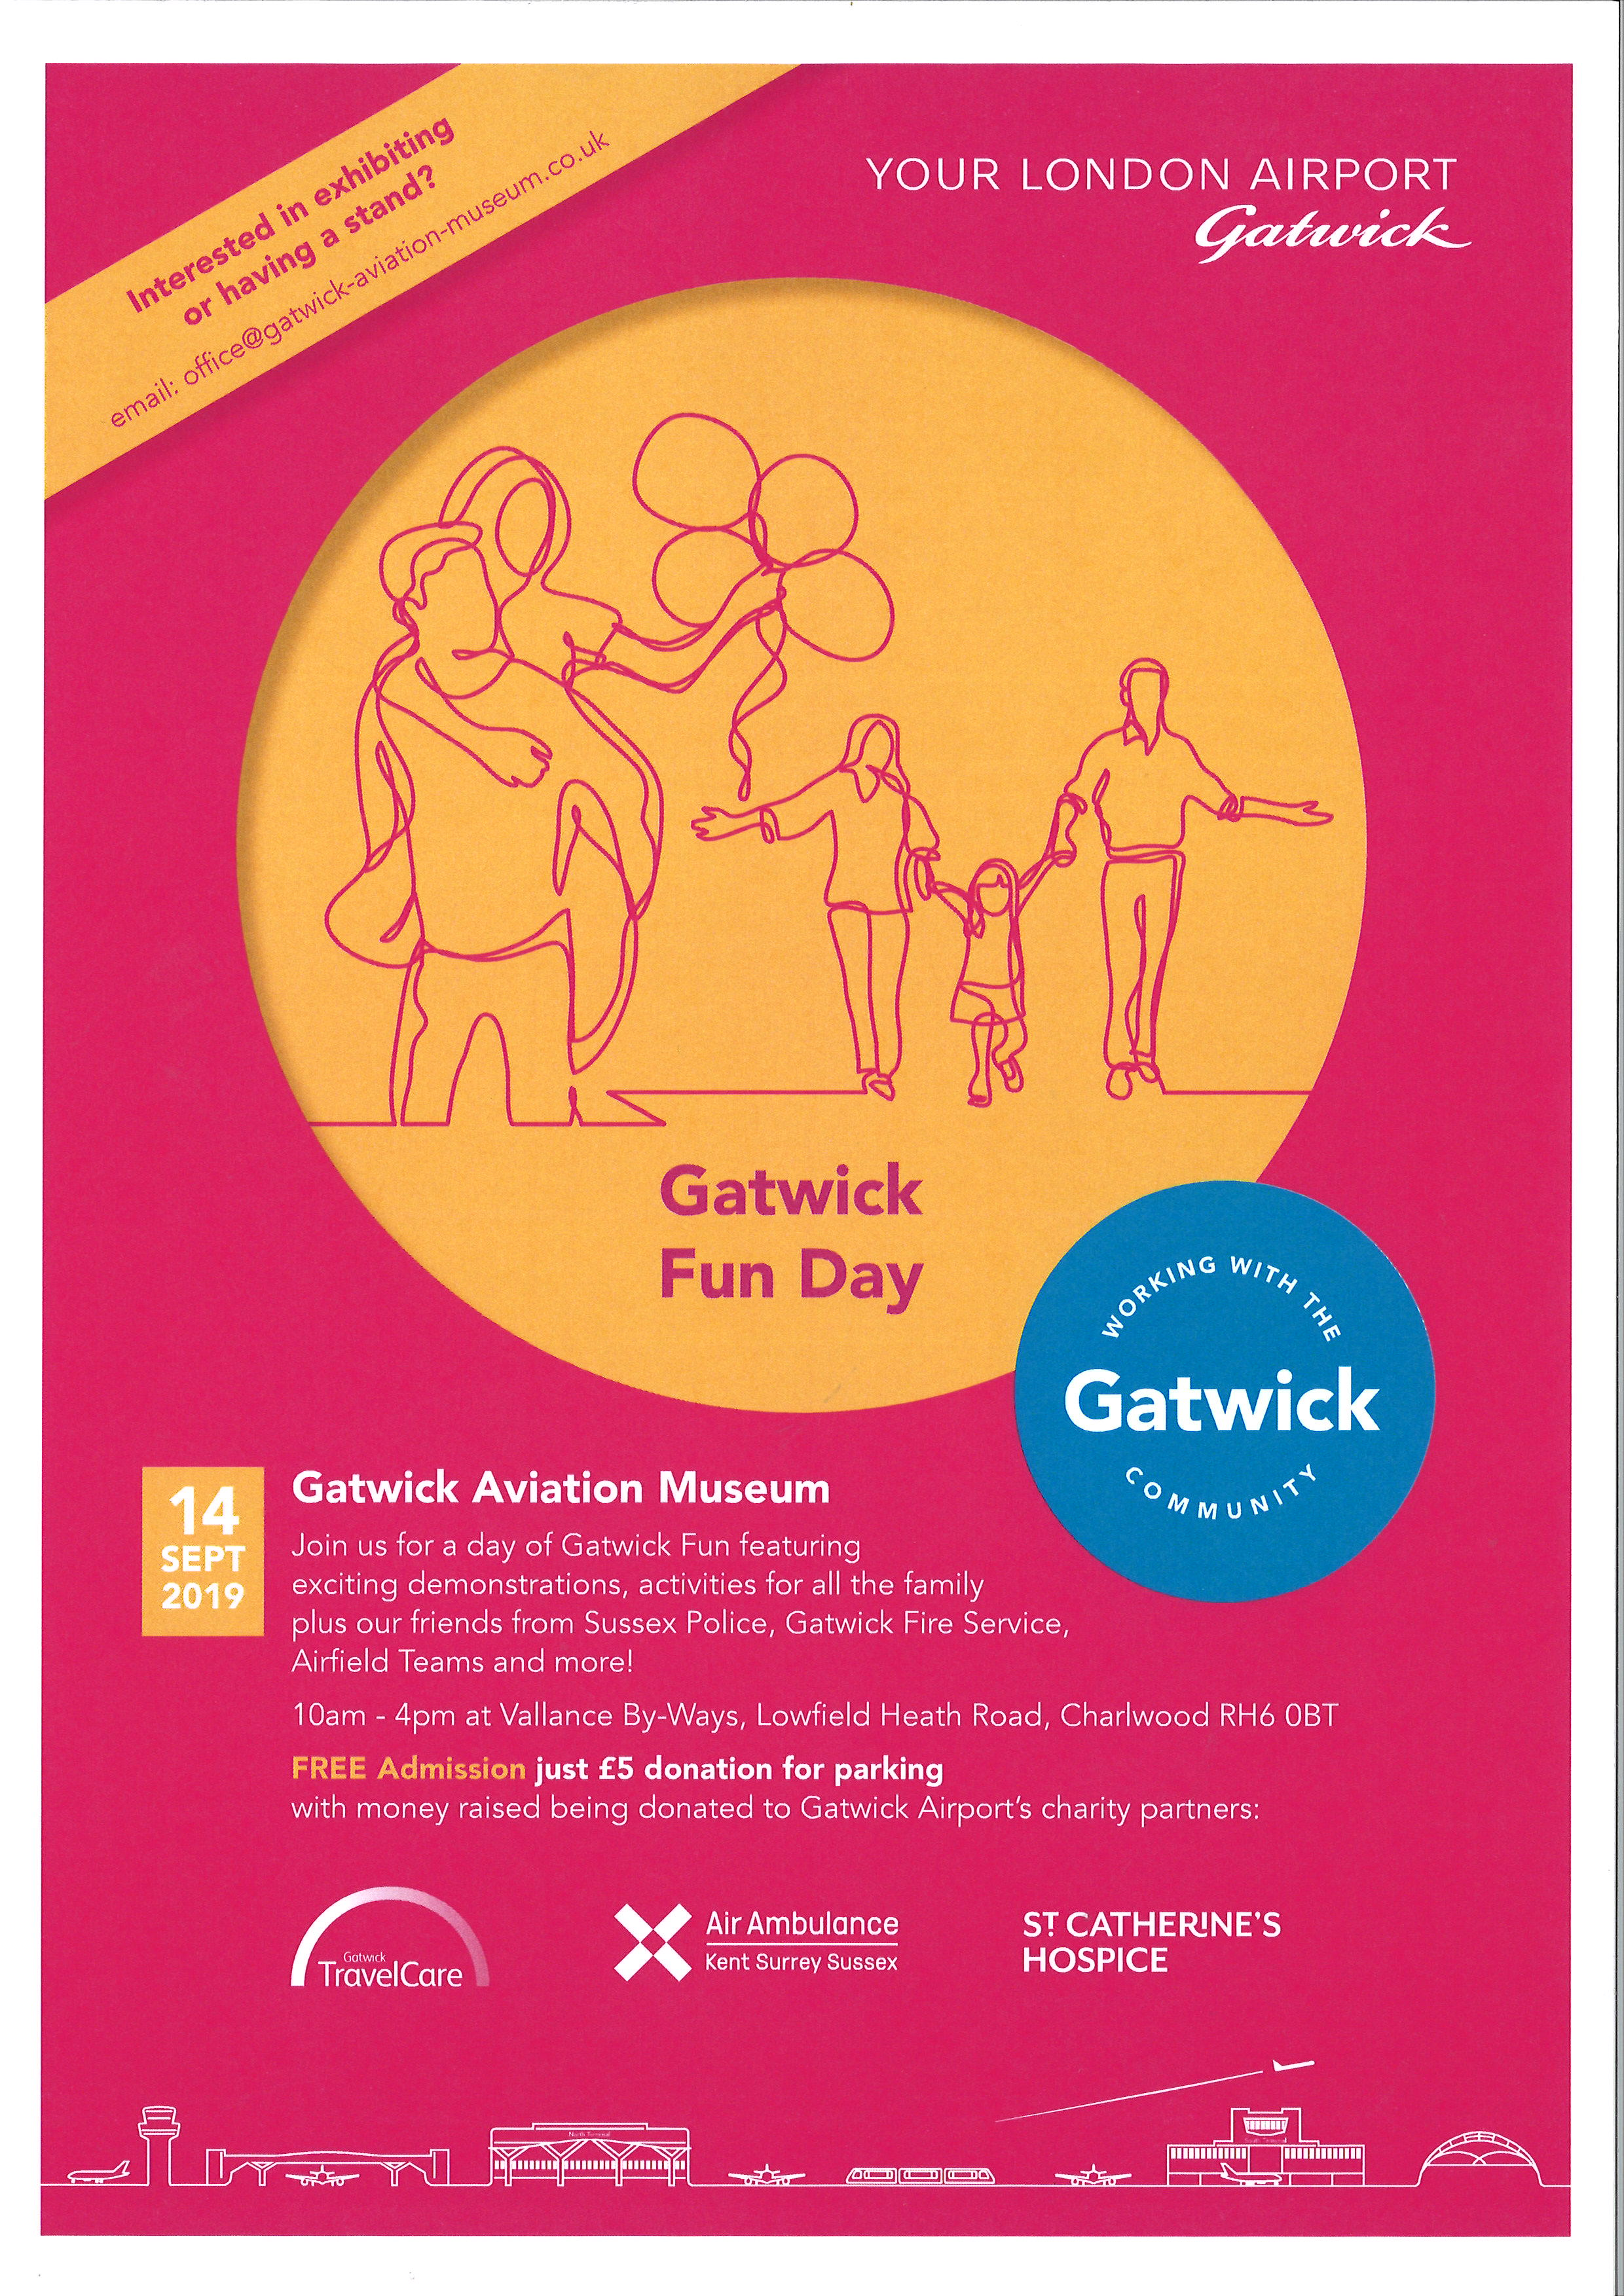 Gatwick Fund Day poster, text from poster shown below